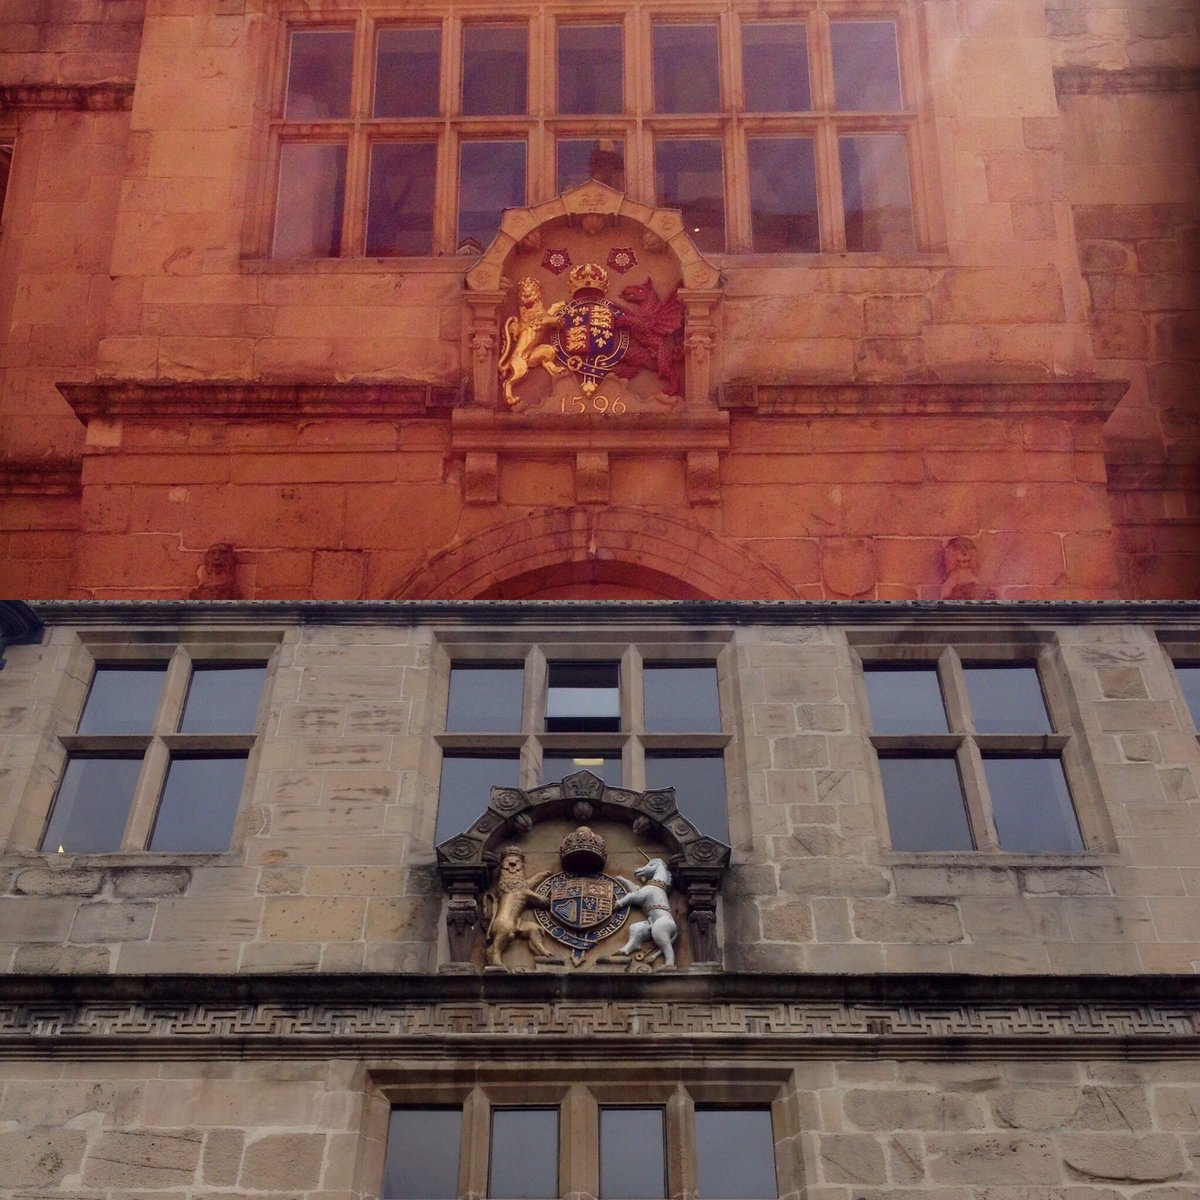 My hometown of #Shrewsbury doesn&#39;t inspire my #DOD books. I write about dynastic changes. Oh... #epicfantasy #series  https://www. amazon.com/Billie-Jo-Will iams/e/B0083VMBGO/ref=dp_byline_cont_pop_ebooks_1 &nbsp; … <br>http://pic.twitter.com/FO9lE6WHYP